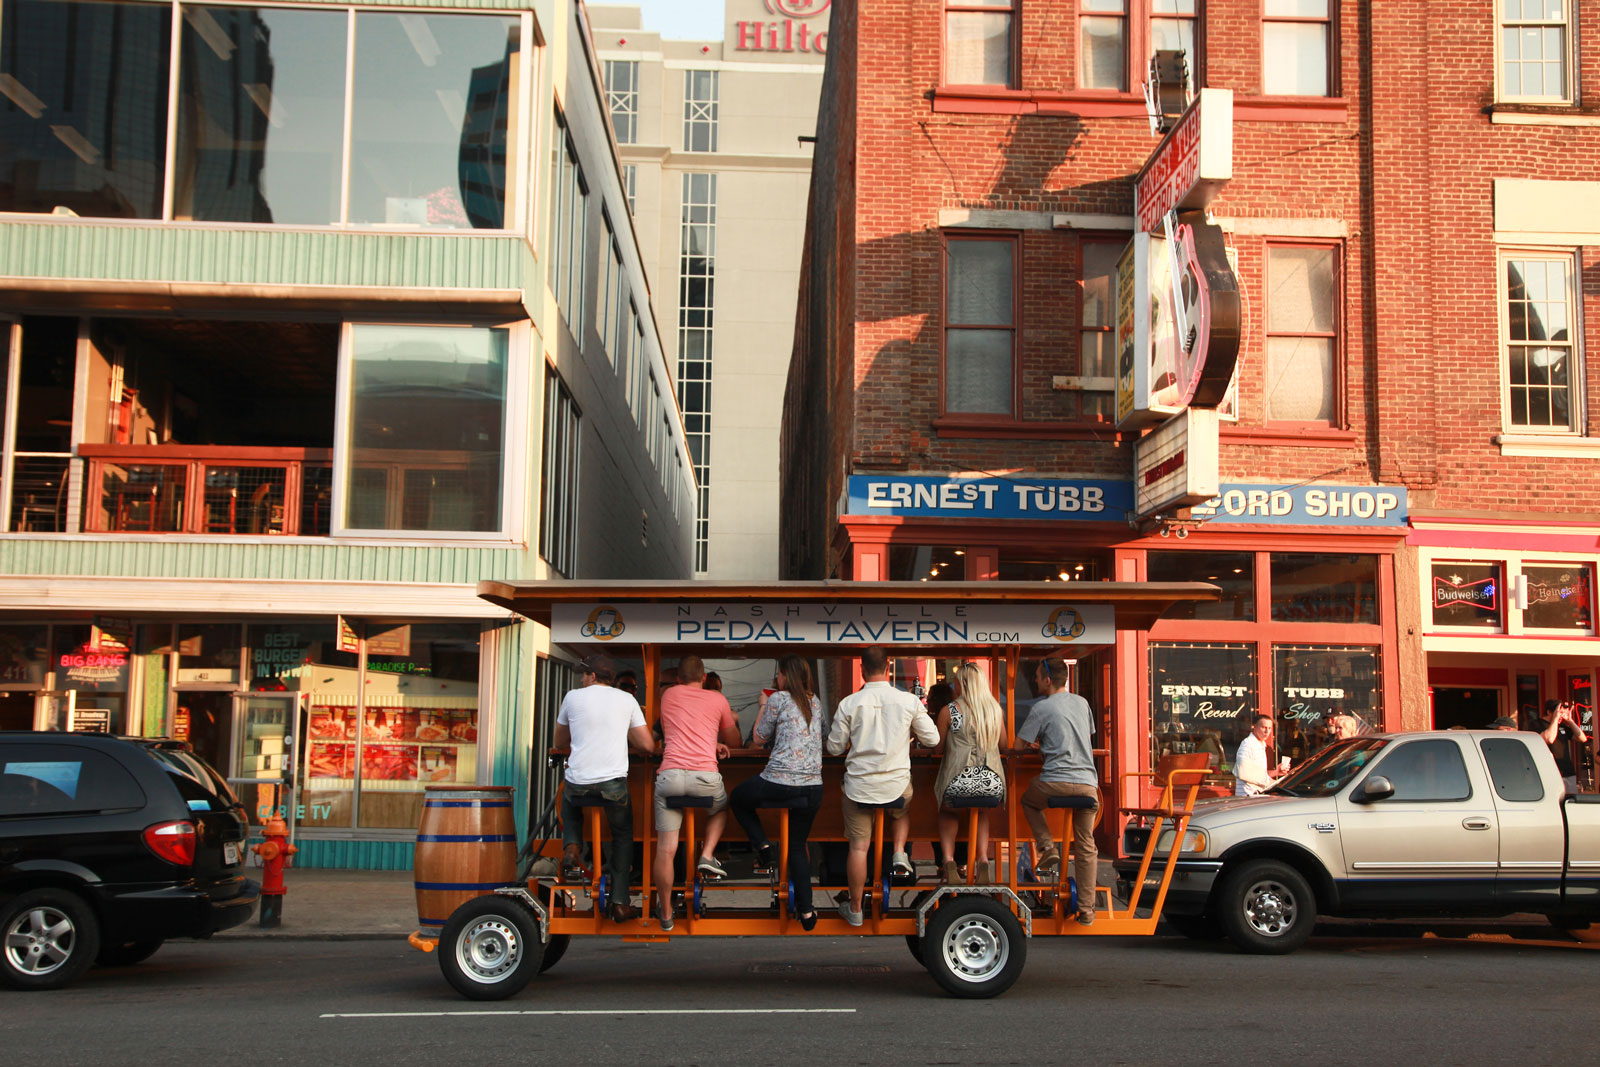 Pedal Tavern Boat moving through downtown Nashville - fun things to do in nashville, nashville attractions, nashville tourist attractions